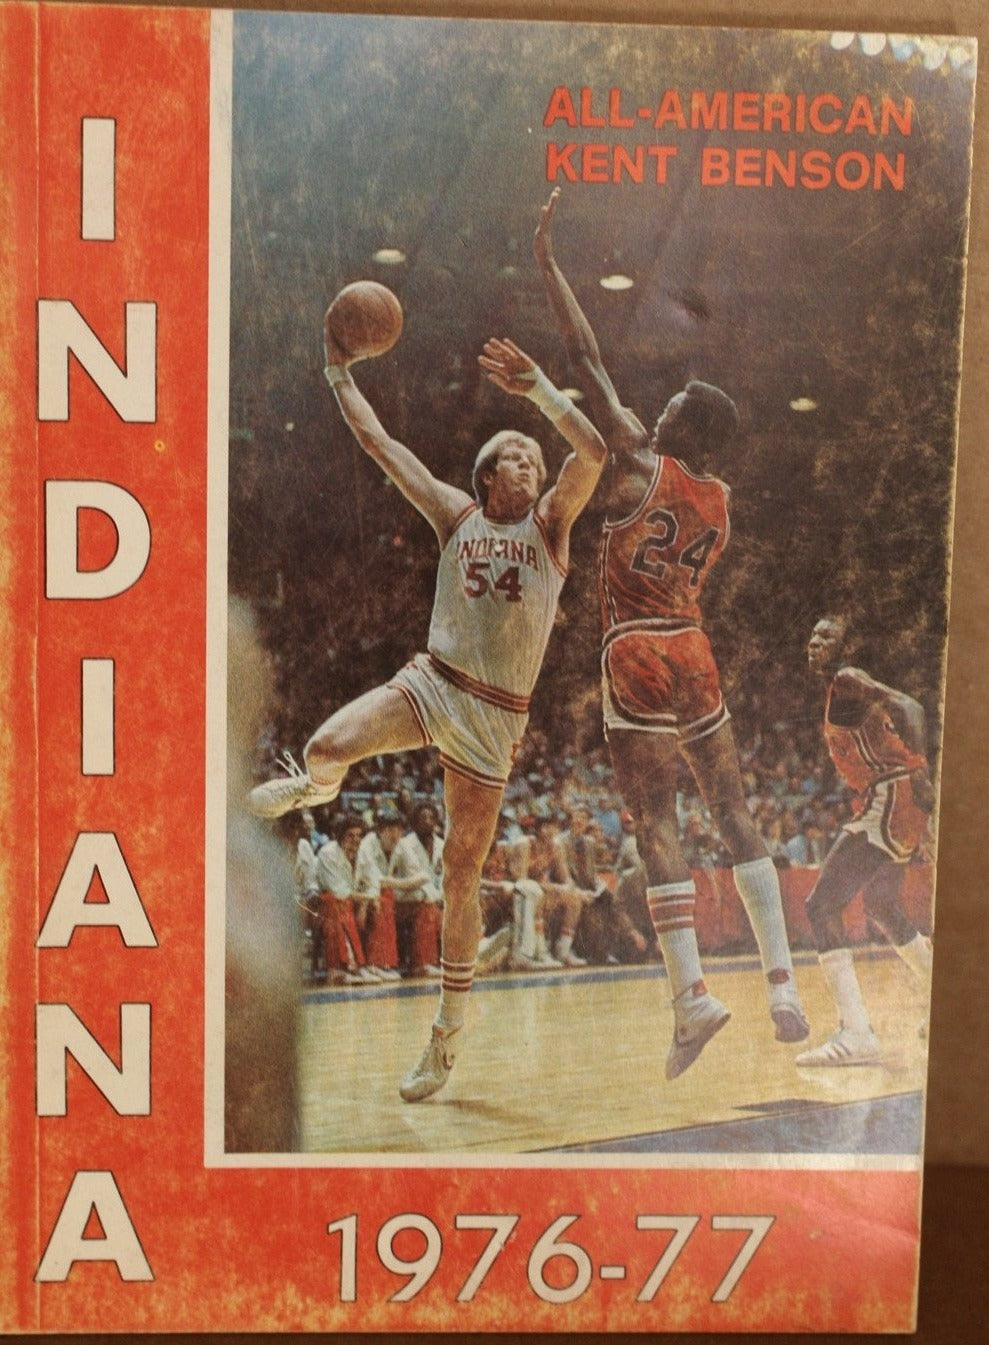 1976-77 Indiana University Basketball Media Guide - Vintage Indy Sports